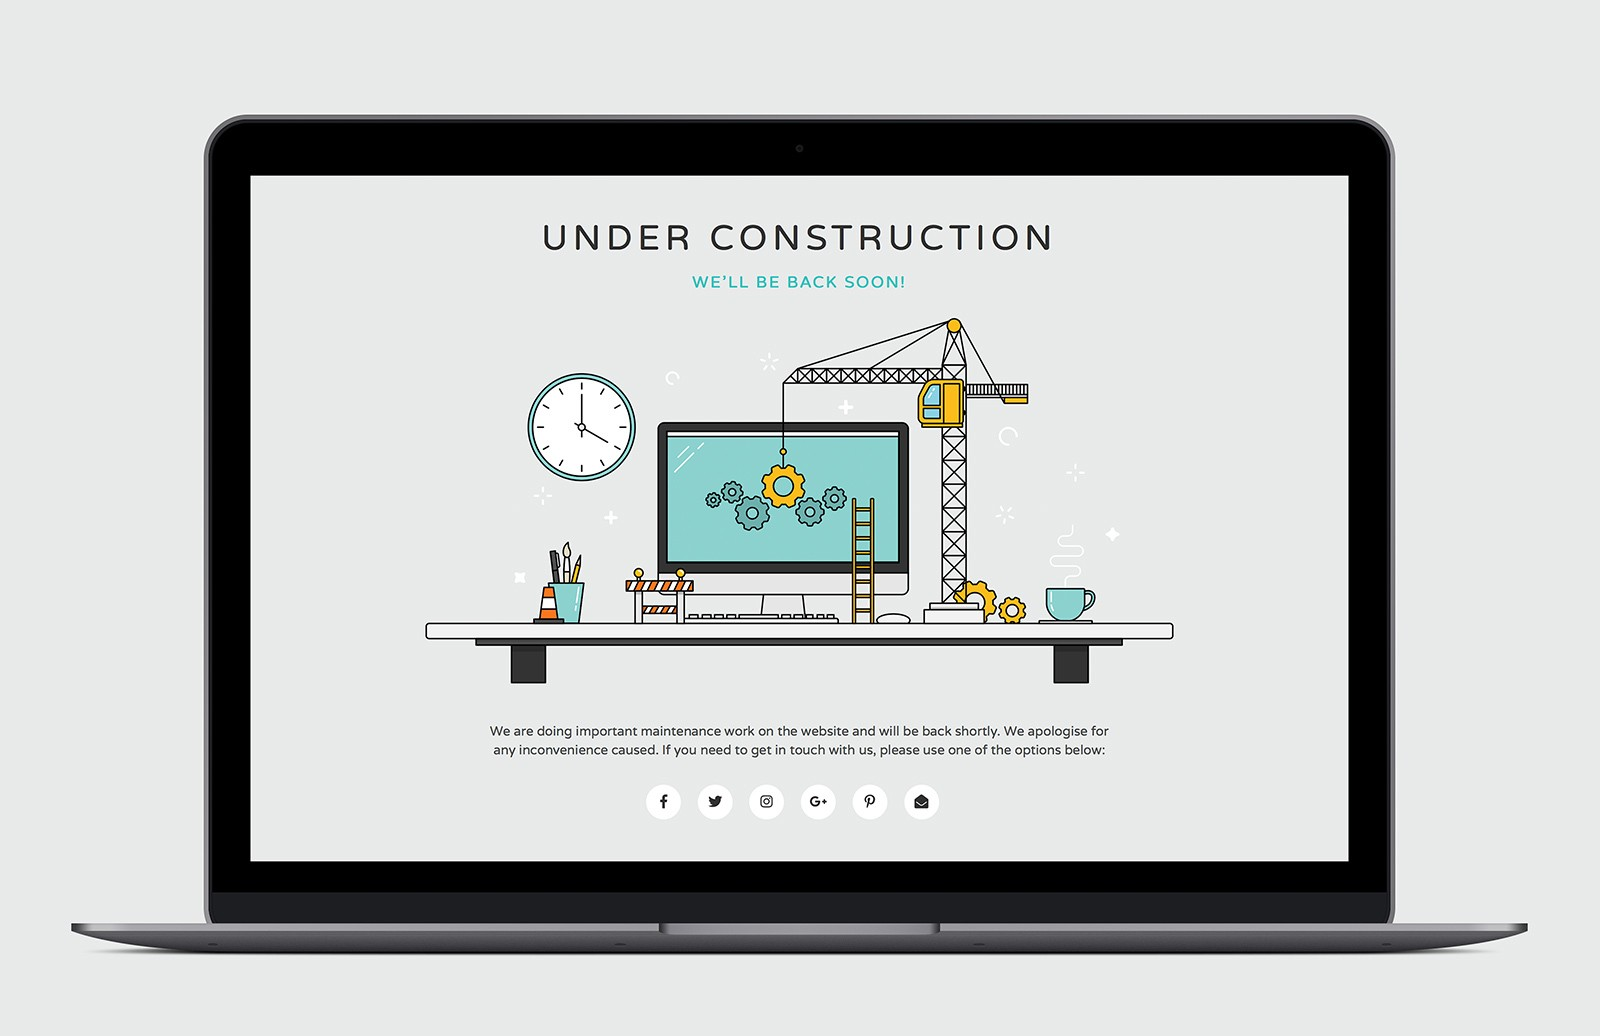 Html Under Construction Page Medialoot